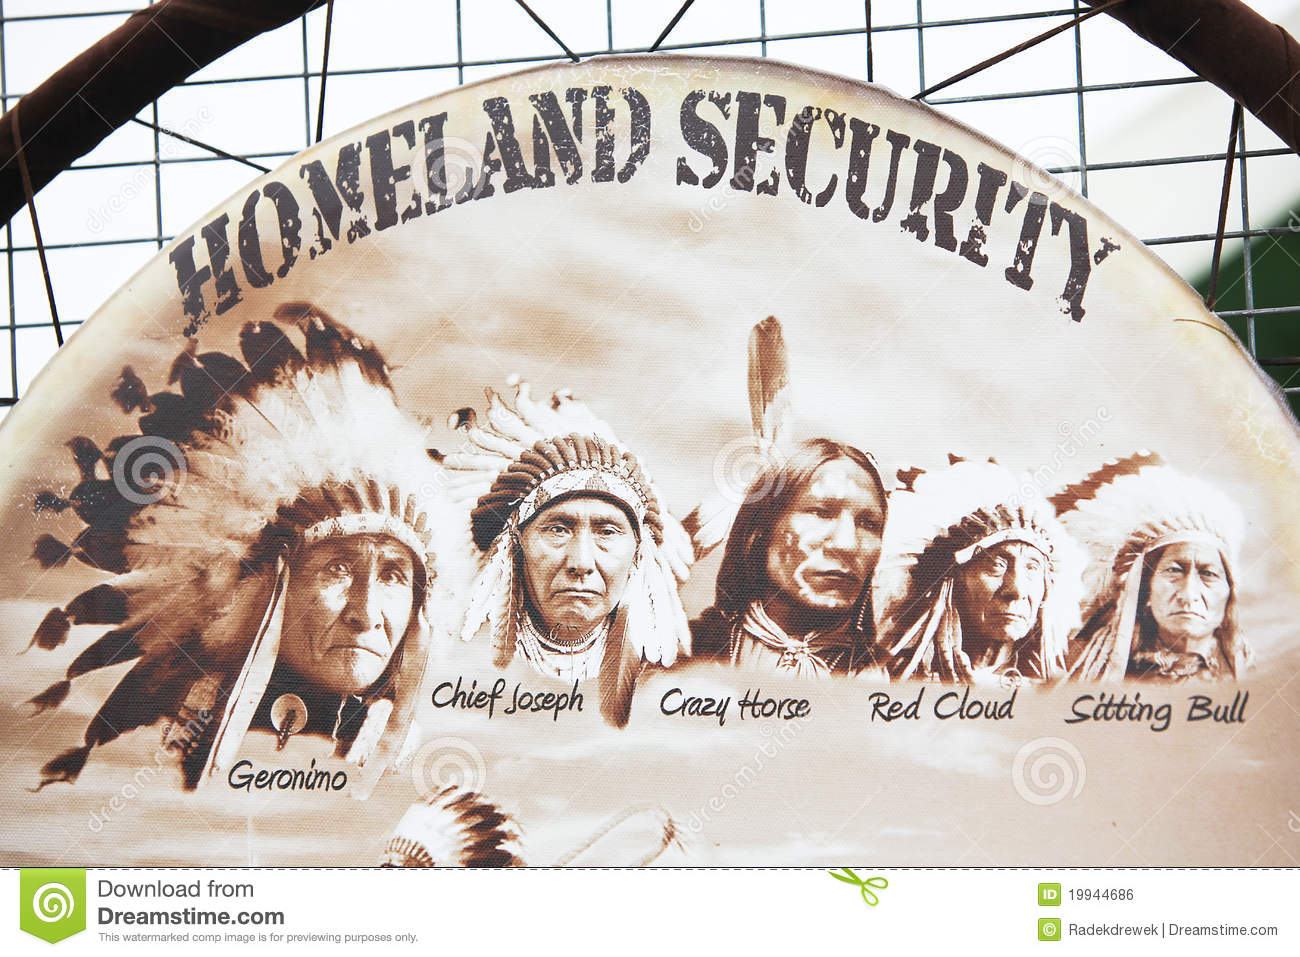 Crazy Horse Indian Photos Free Royalty Free Stock Photos From Dreamstime